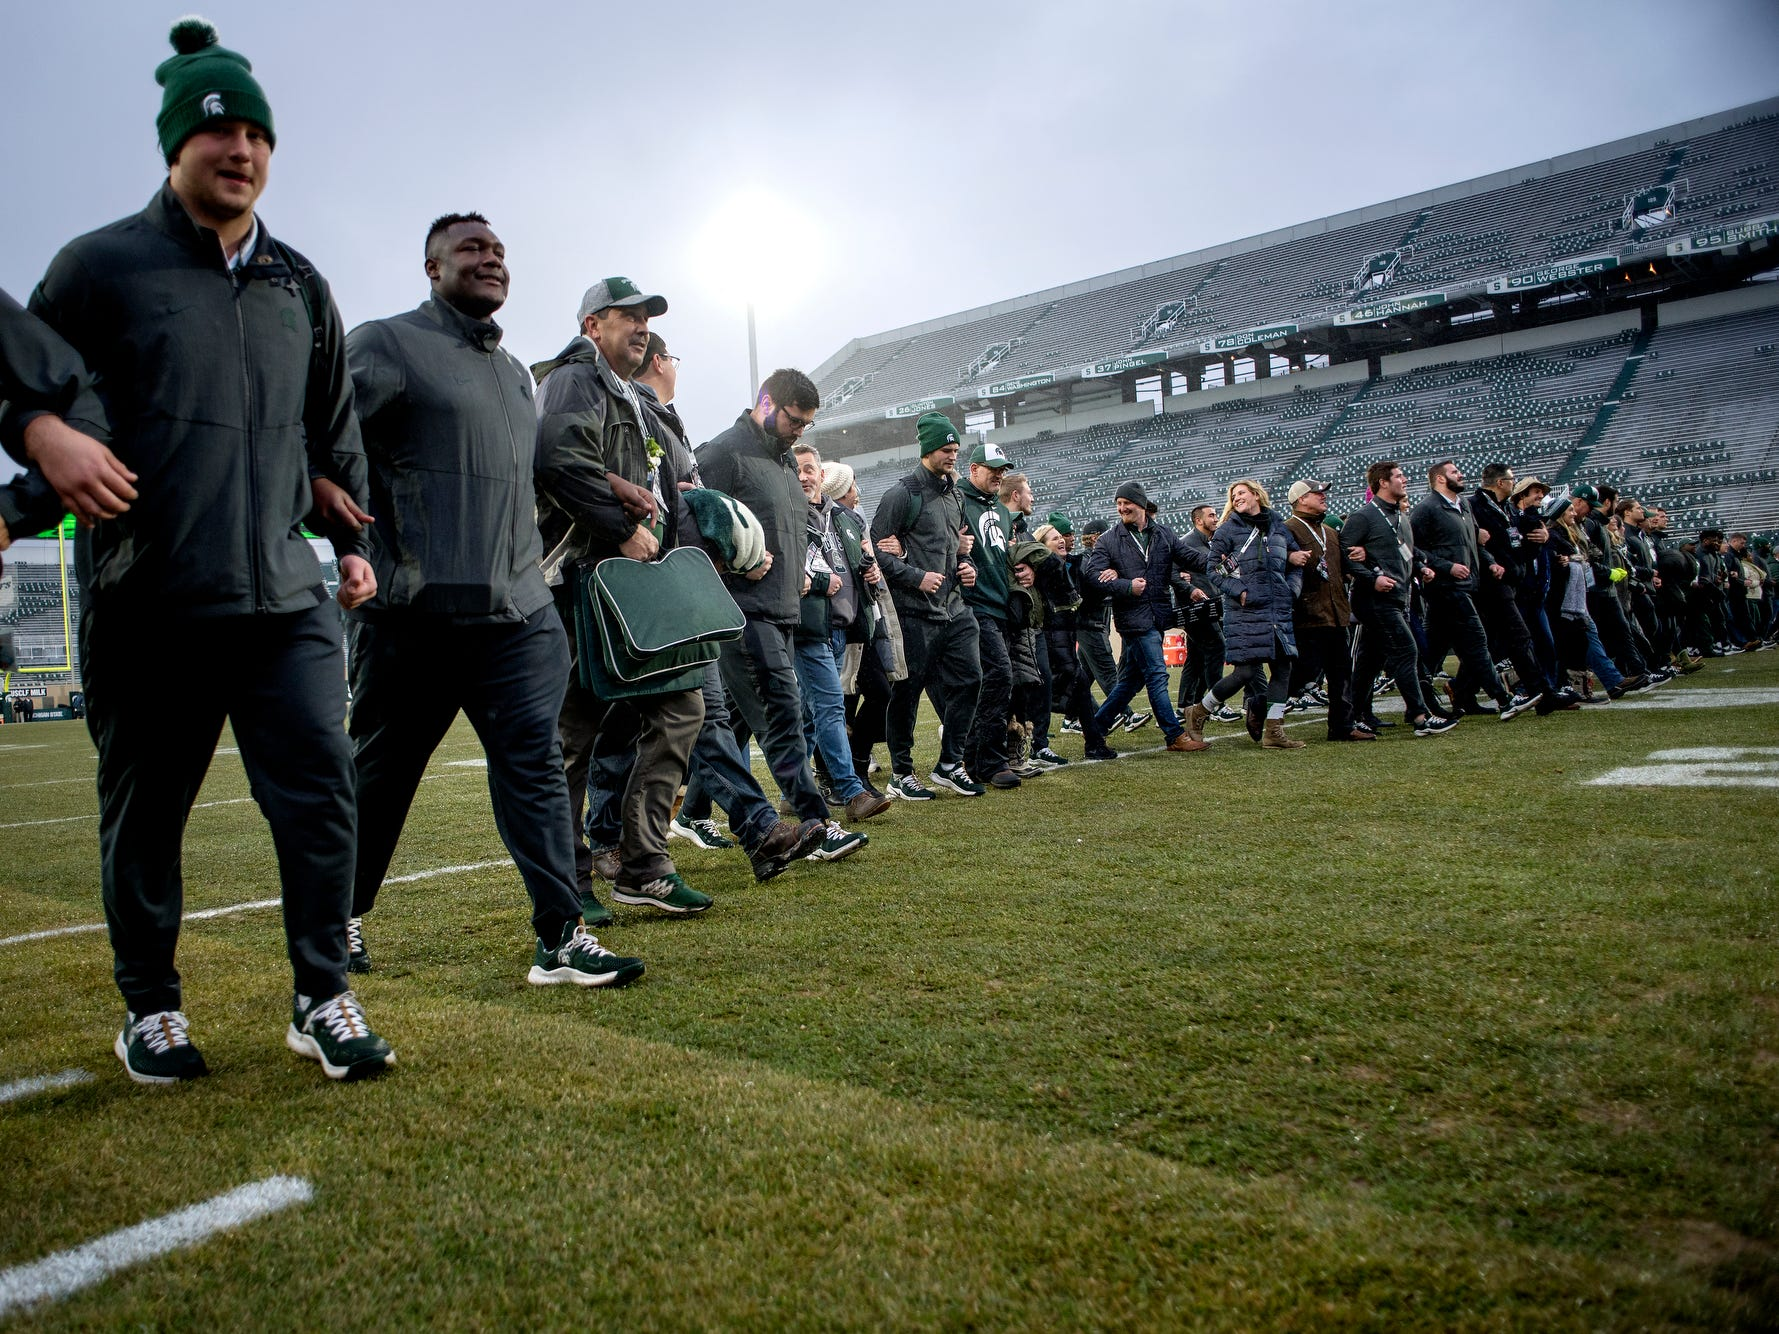 Michigan State players and the seniors' family members walk across the field before the game against Rutgers on Saturday, Nov. 24, 2018, at Spartan Stadium in East Lansing.